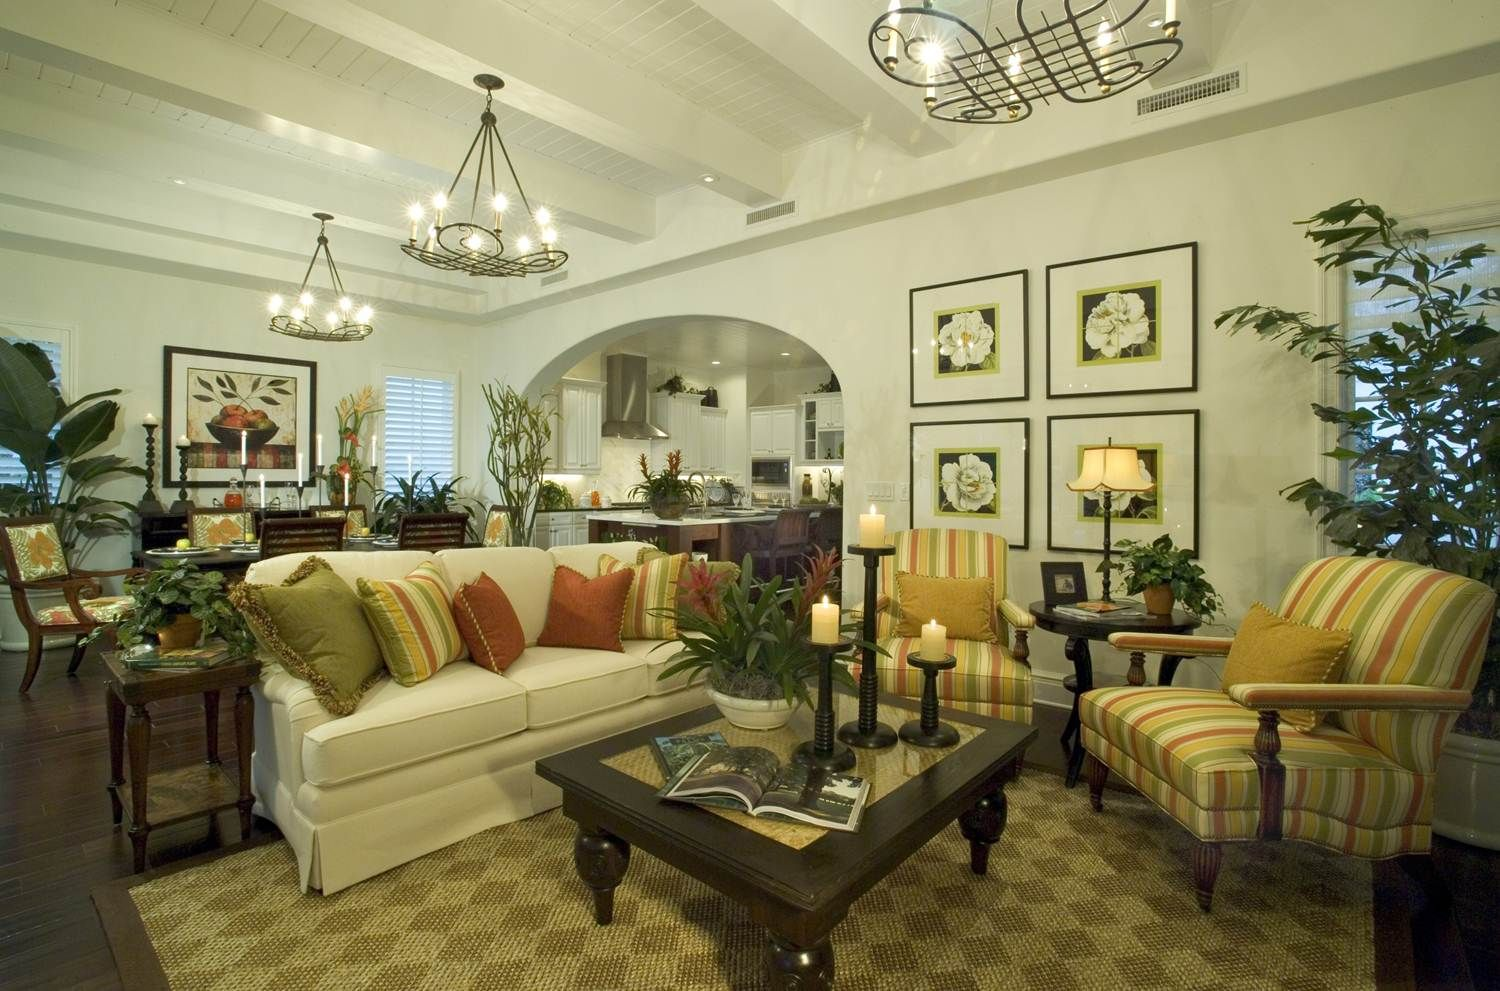 Tropical Living Rooms Living Room White Wall Interior By Mga Tropica Country Living Room French Country Living Room French Country Decorating Living Room #tropical #living #room #design